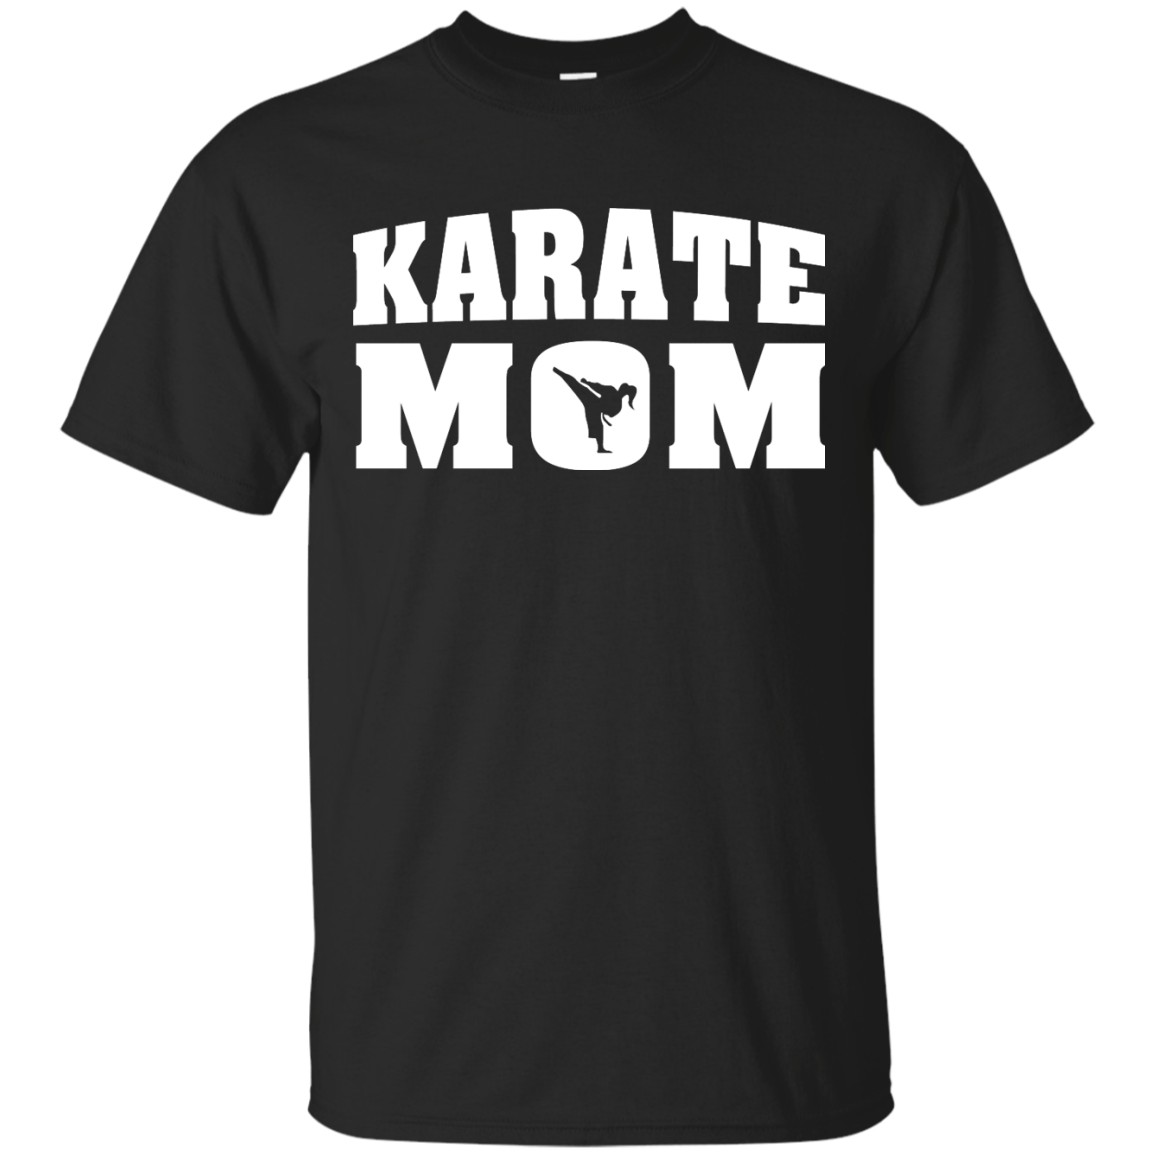 Greatest Shop for Mixed Martial Arts T-shirt at iSkyTee BK96